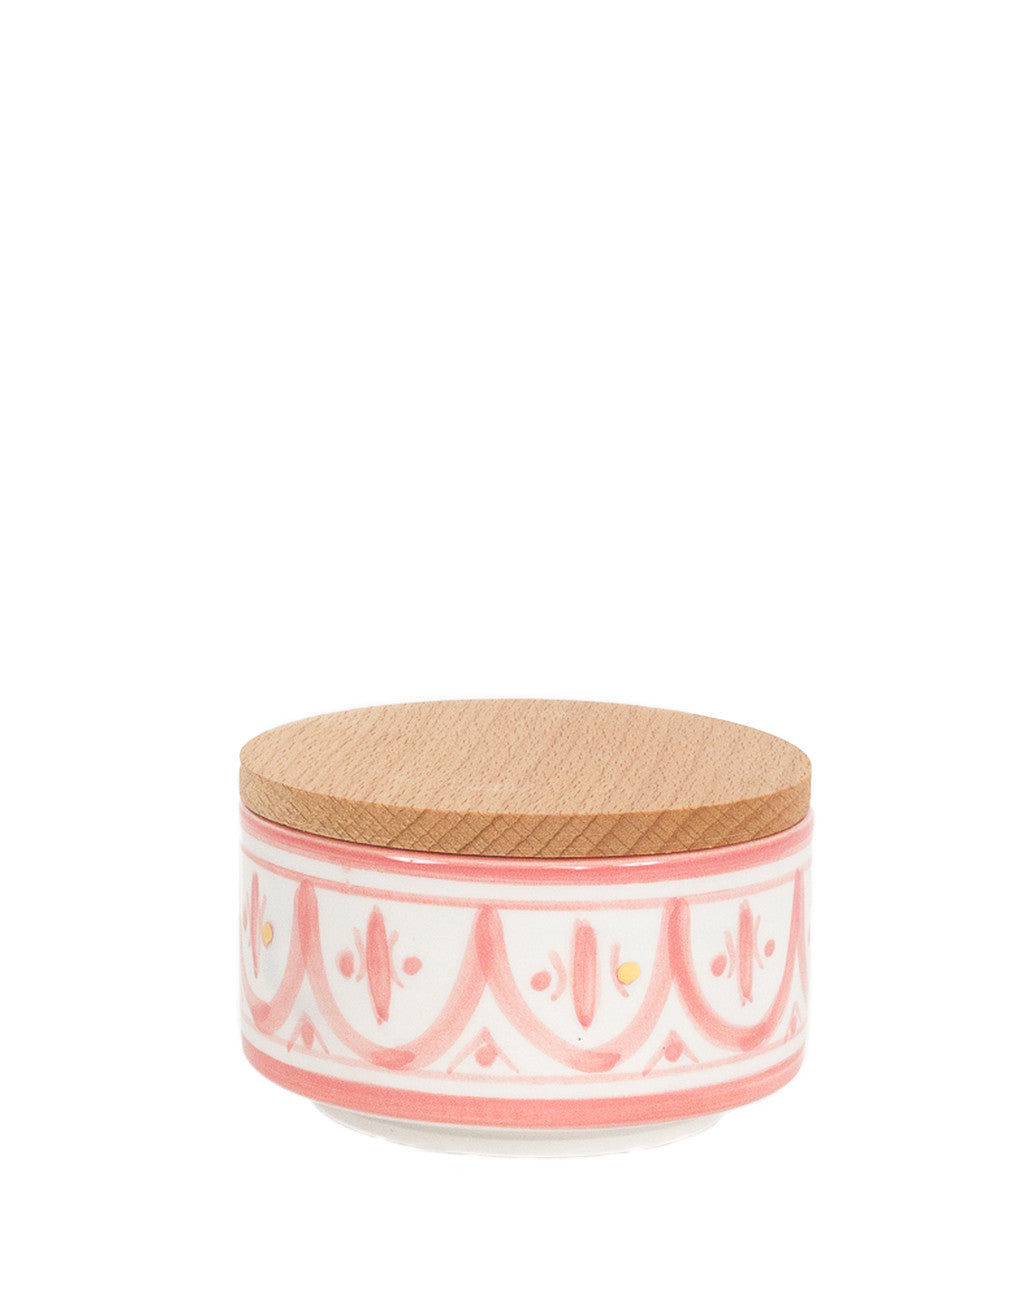 Fair Trade, Handmade Moroccan Ceramic Box, Blush